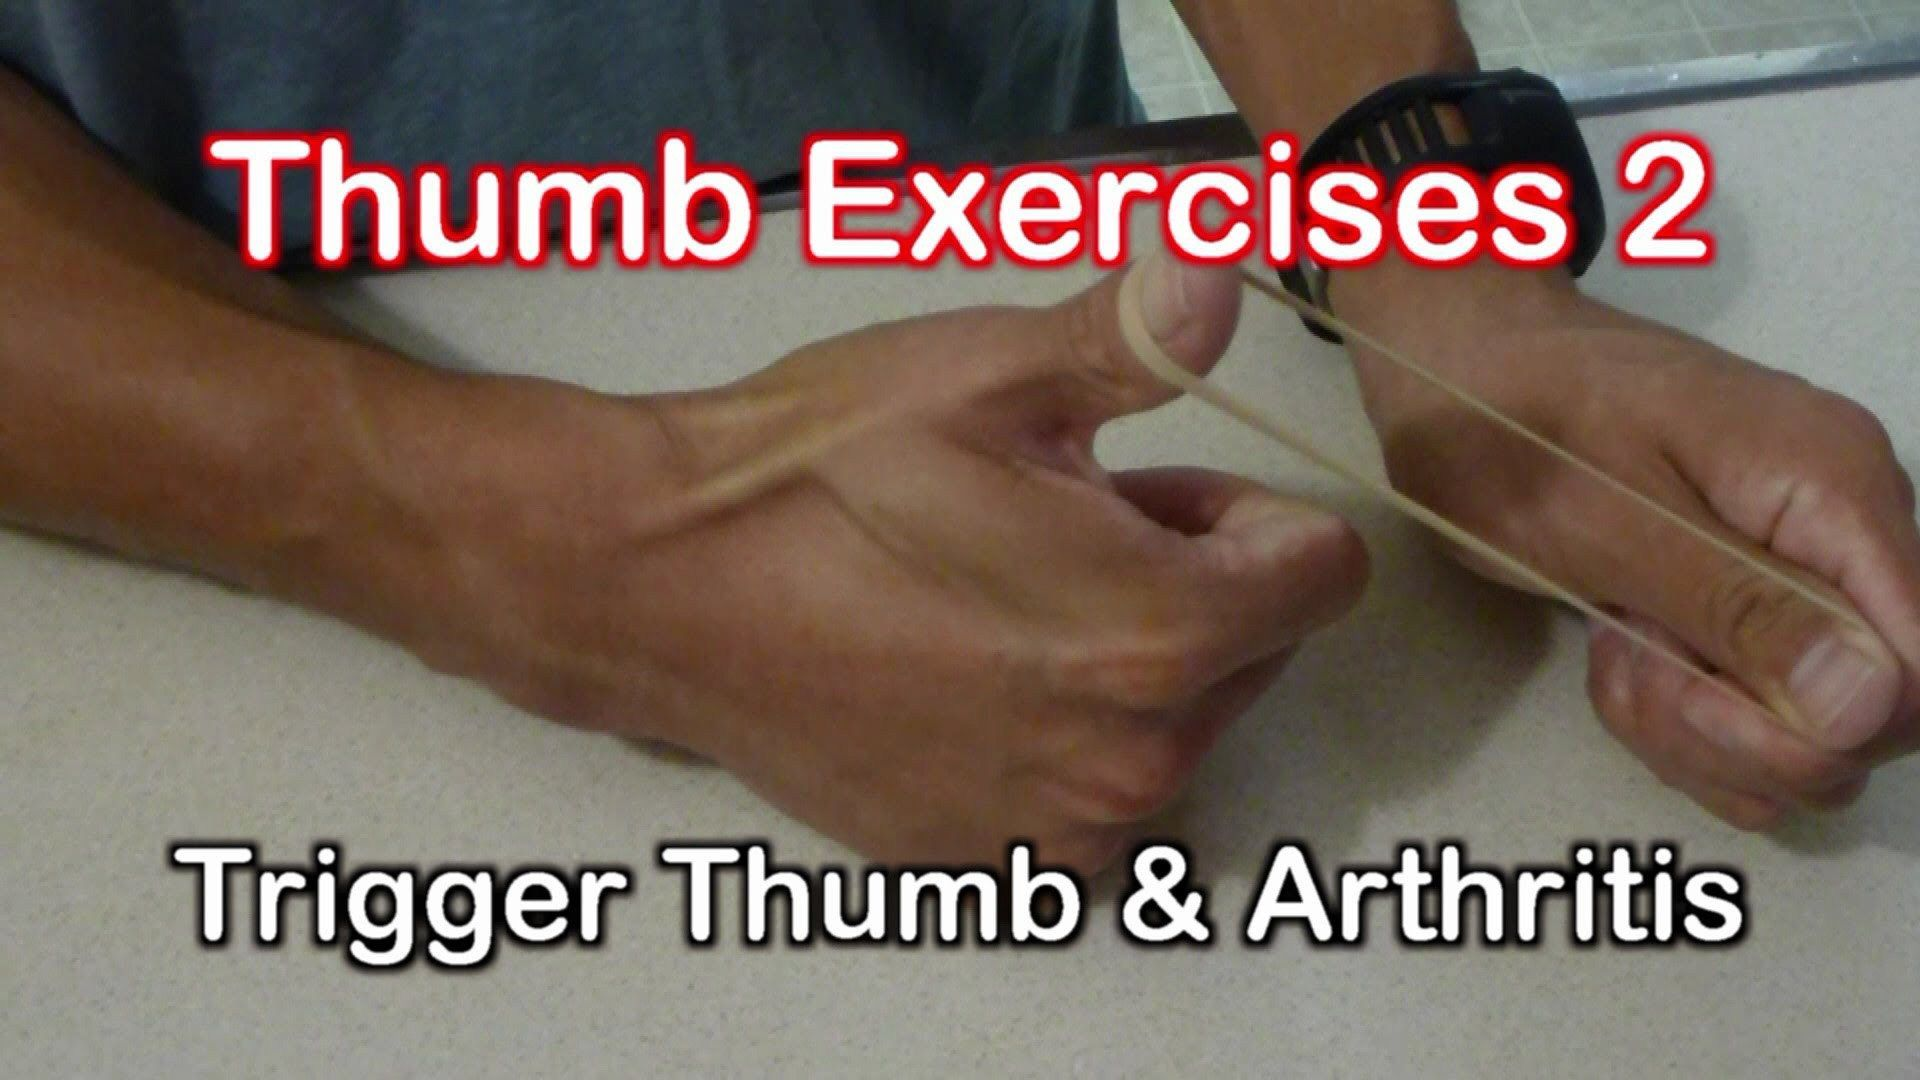 Thumb Exercises for Trigger Thumb & Arthritis Exercises - WATCH ...